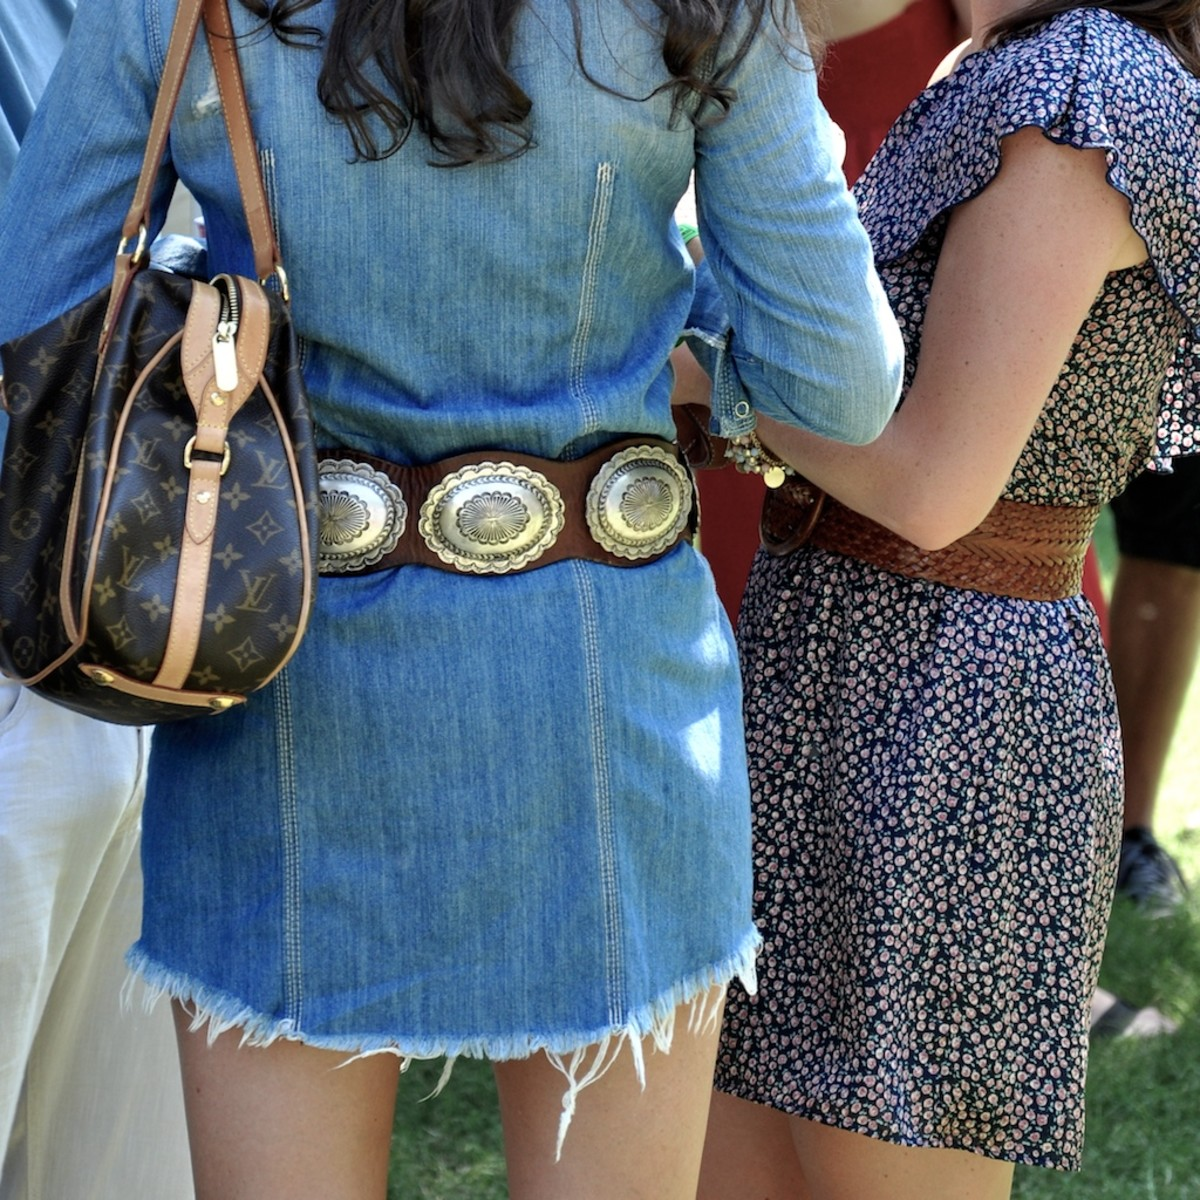 #5 concho belt with short blue jean skirt